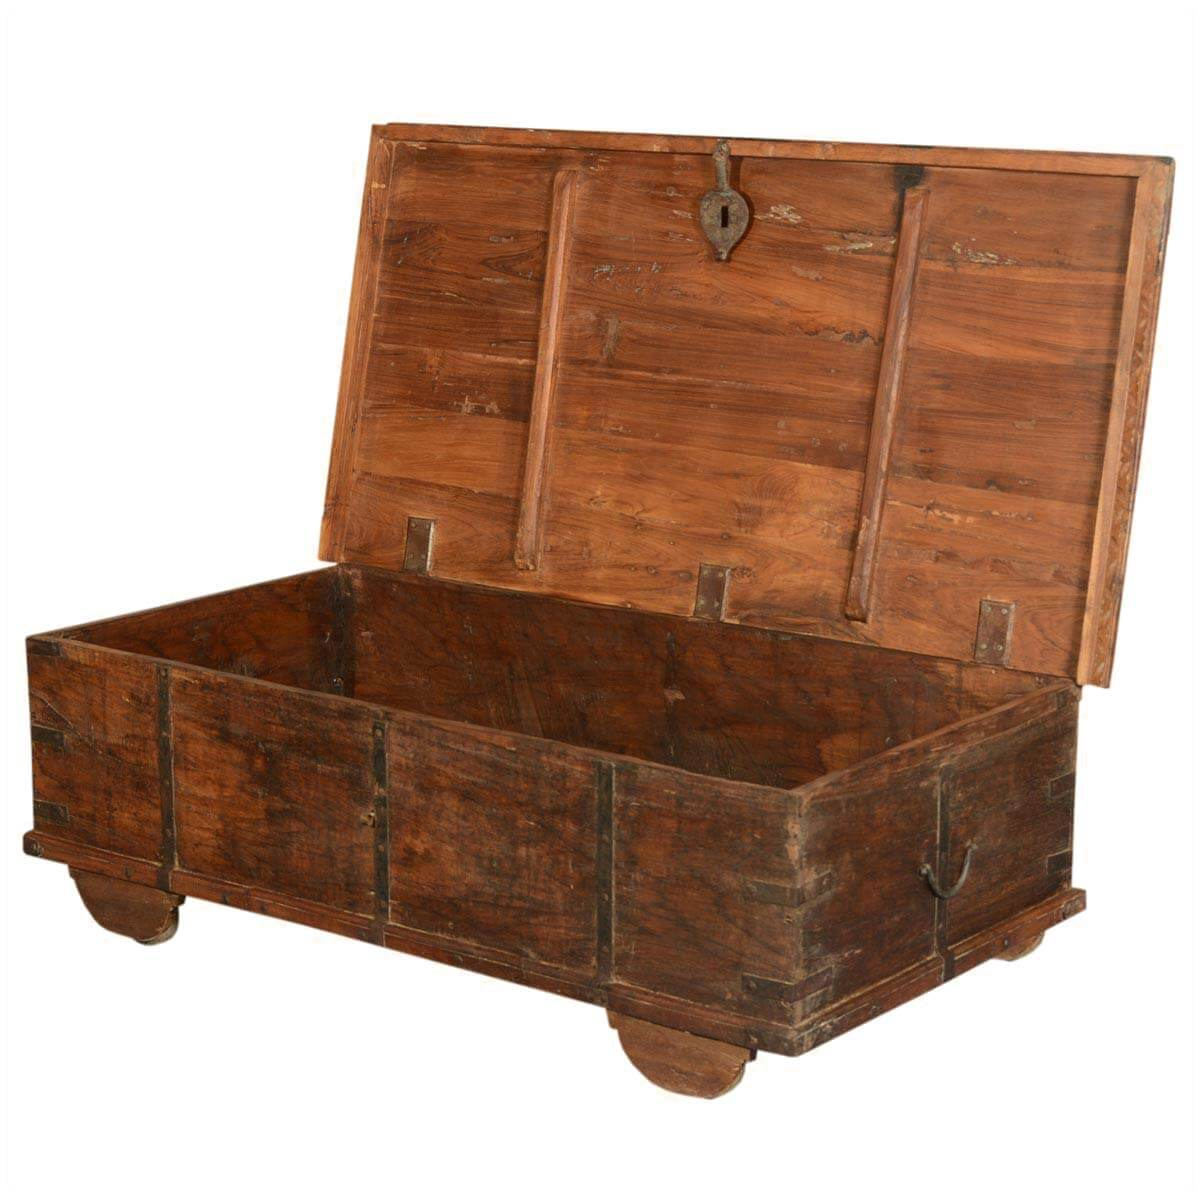 Rustic Trunk Coffee Table Beaufort Steamer Storage